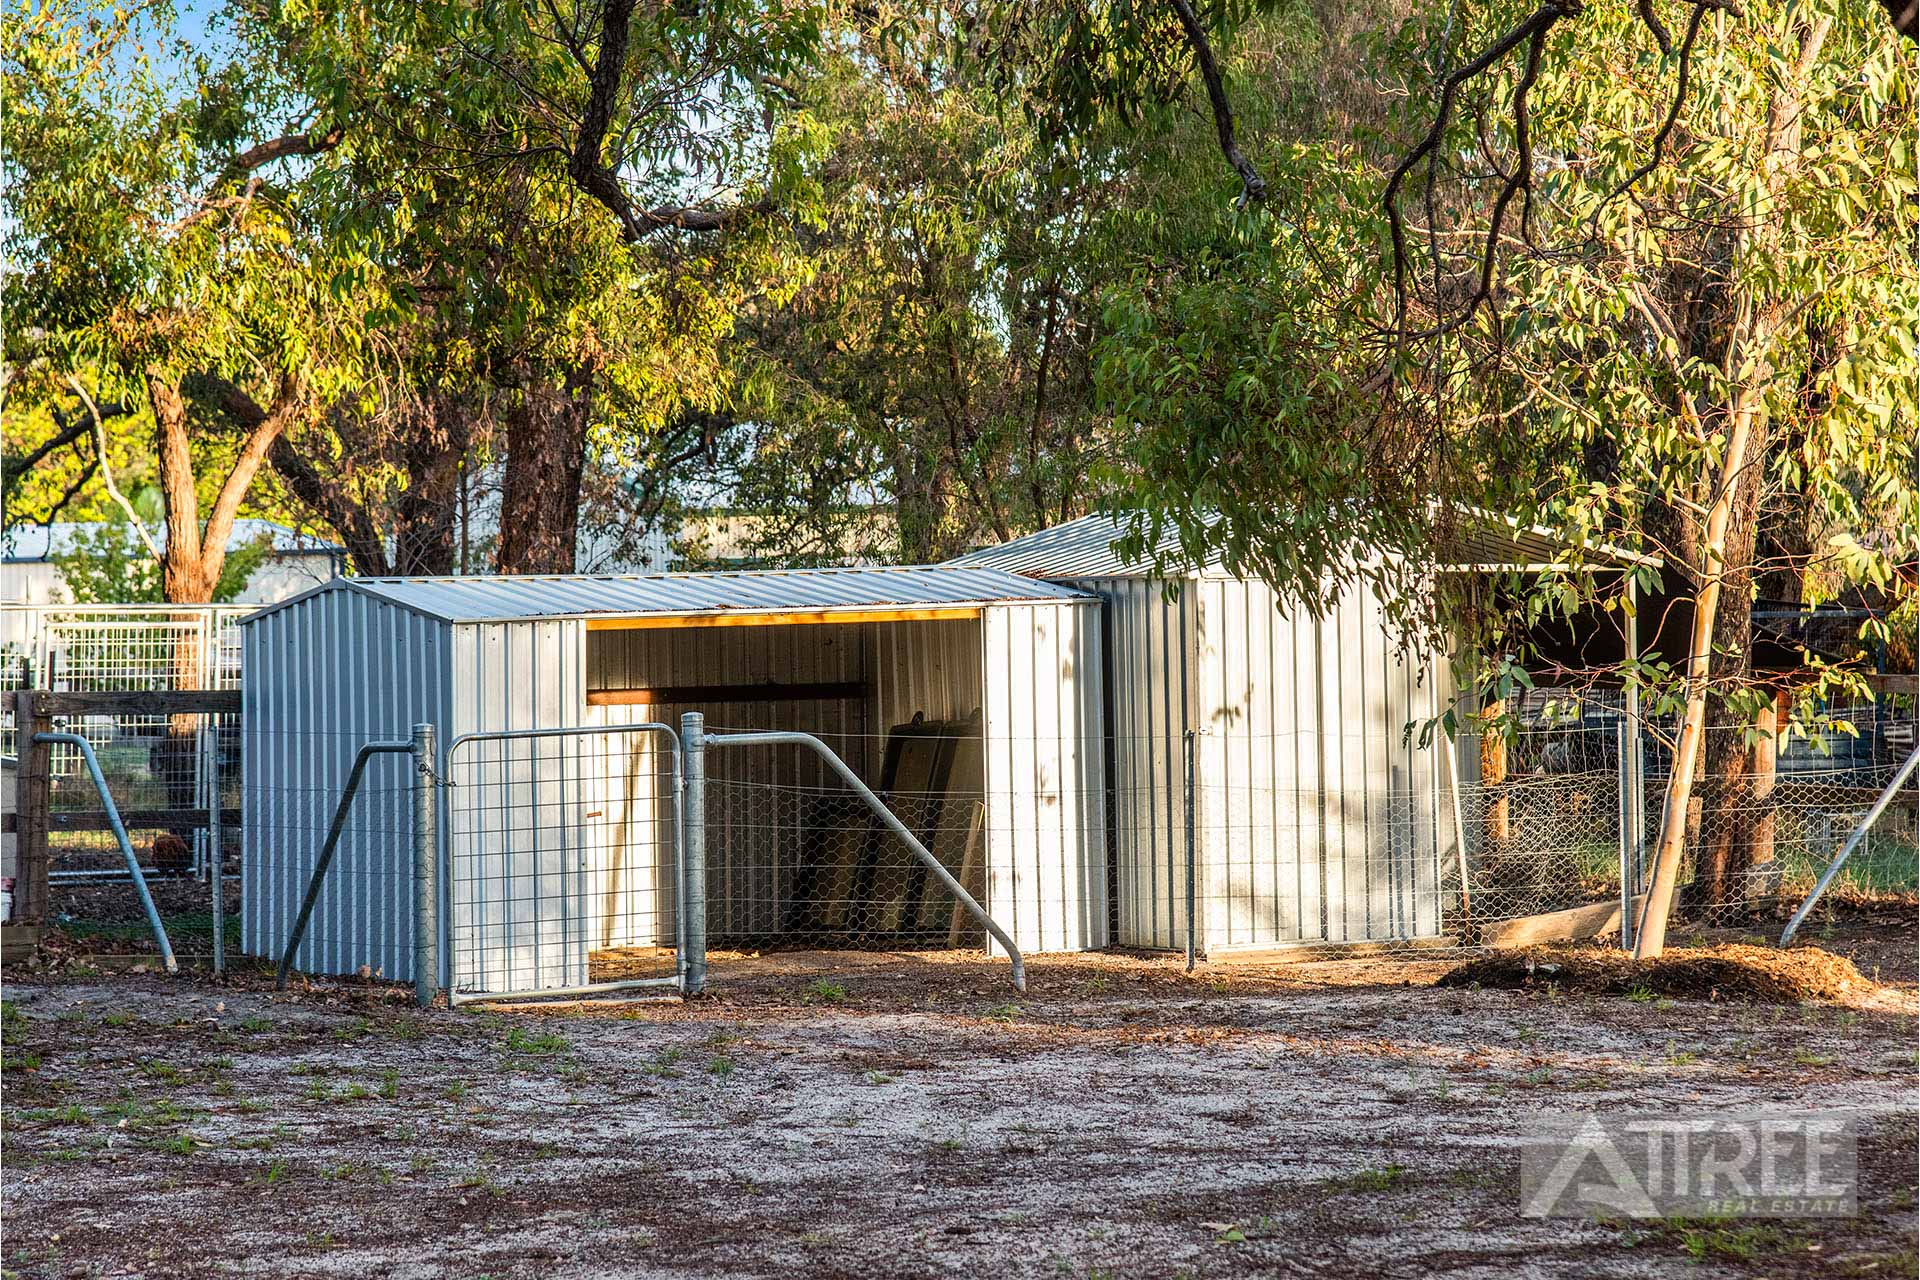 Property for sale in DARLING DOWNS, 47 Bruns Drive : Attree Real Estate